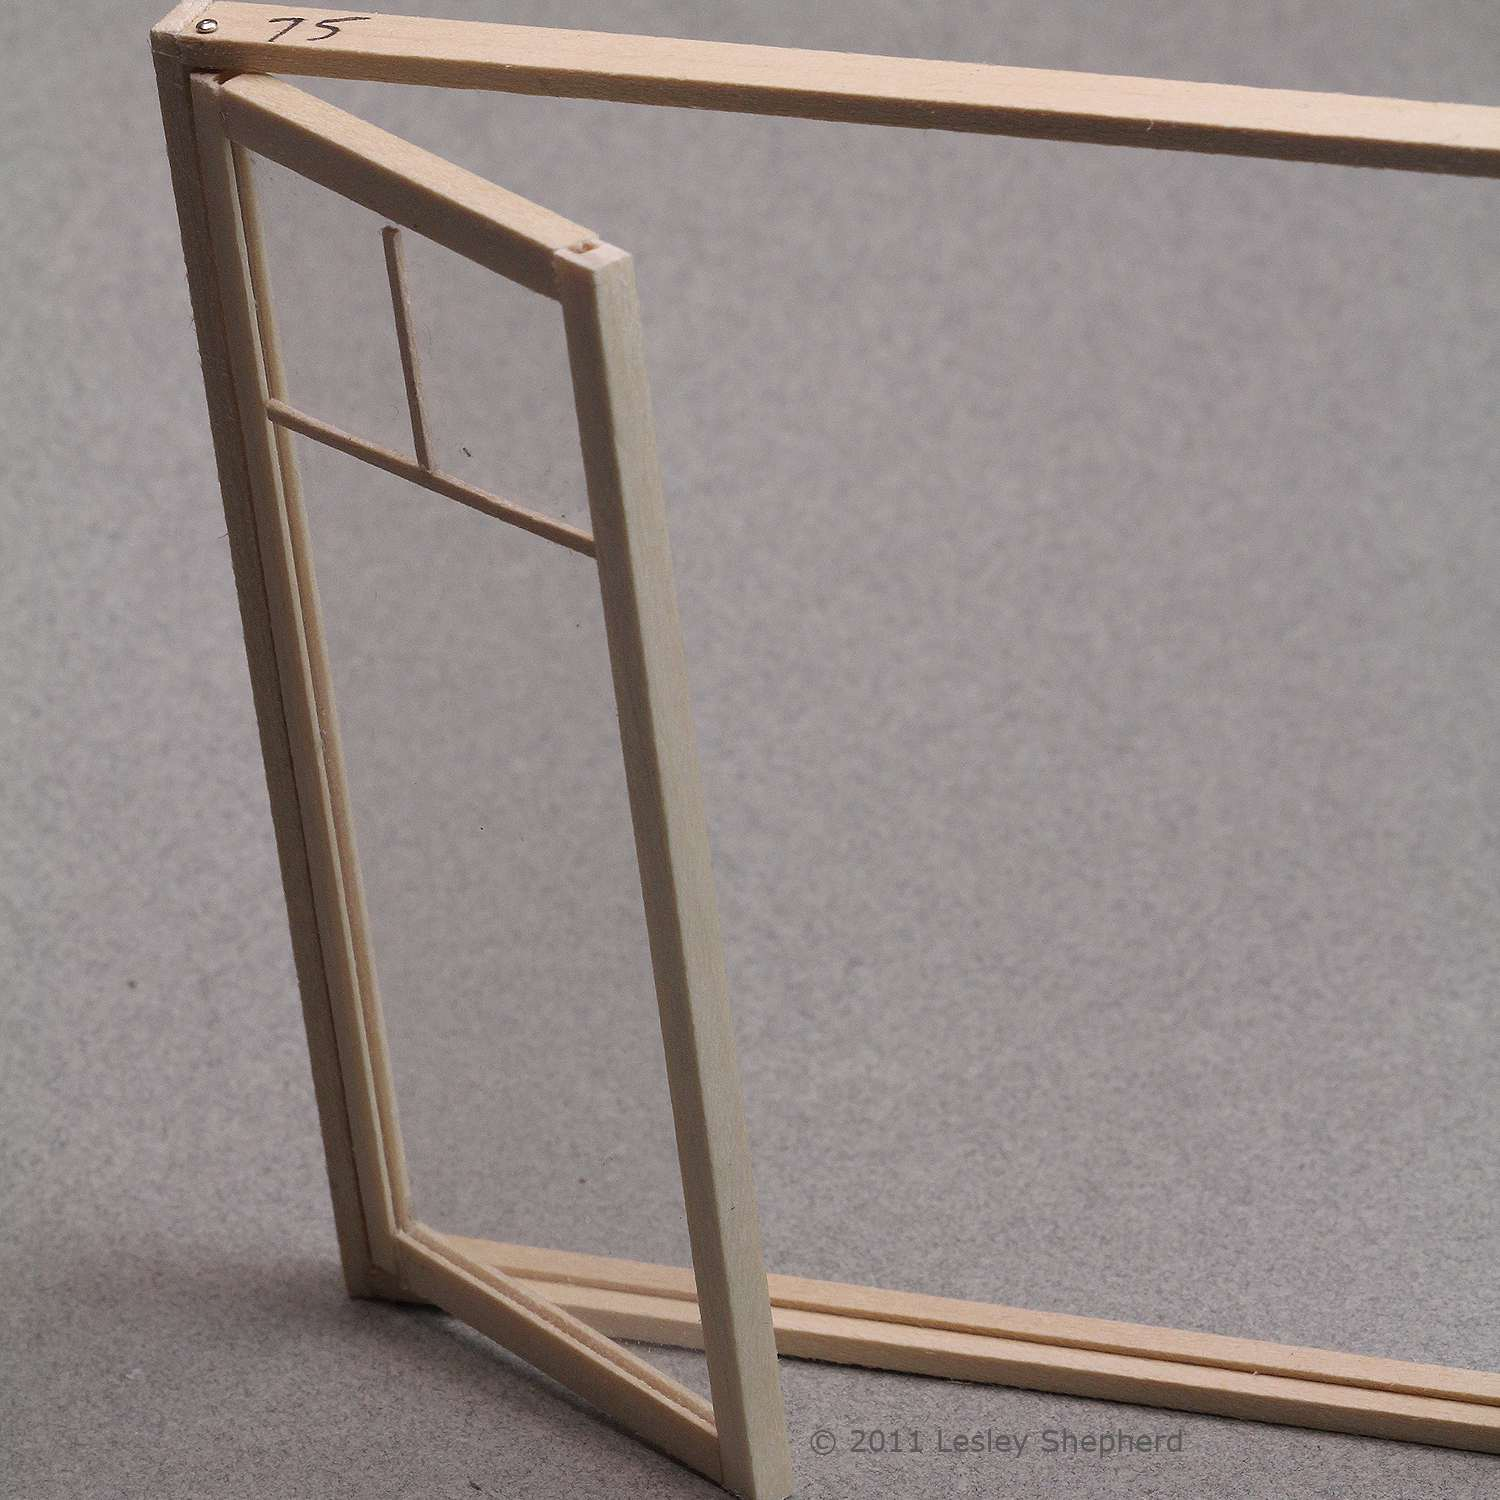 Opening casement window for a dolls house